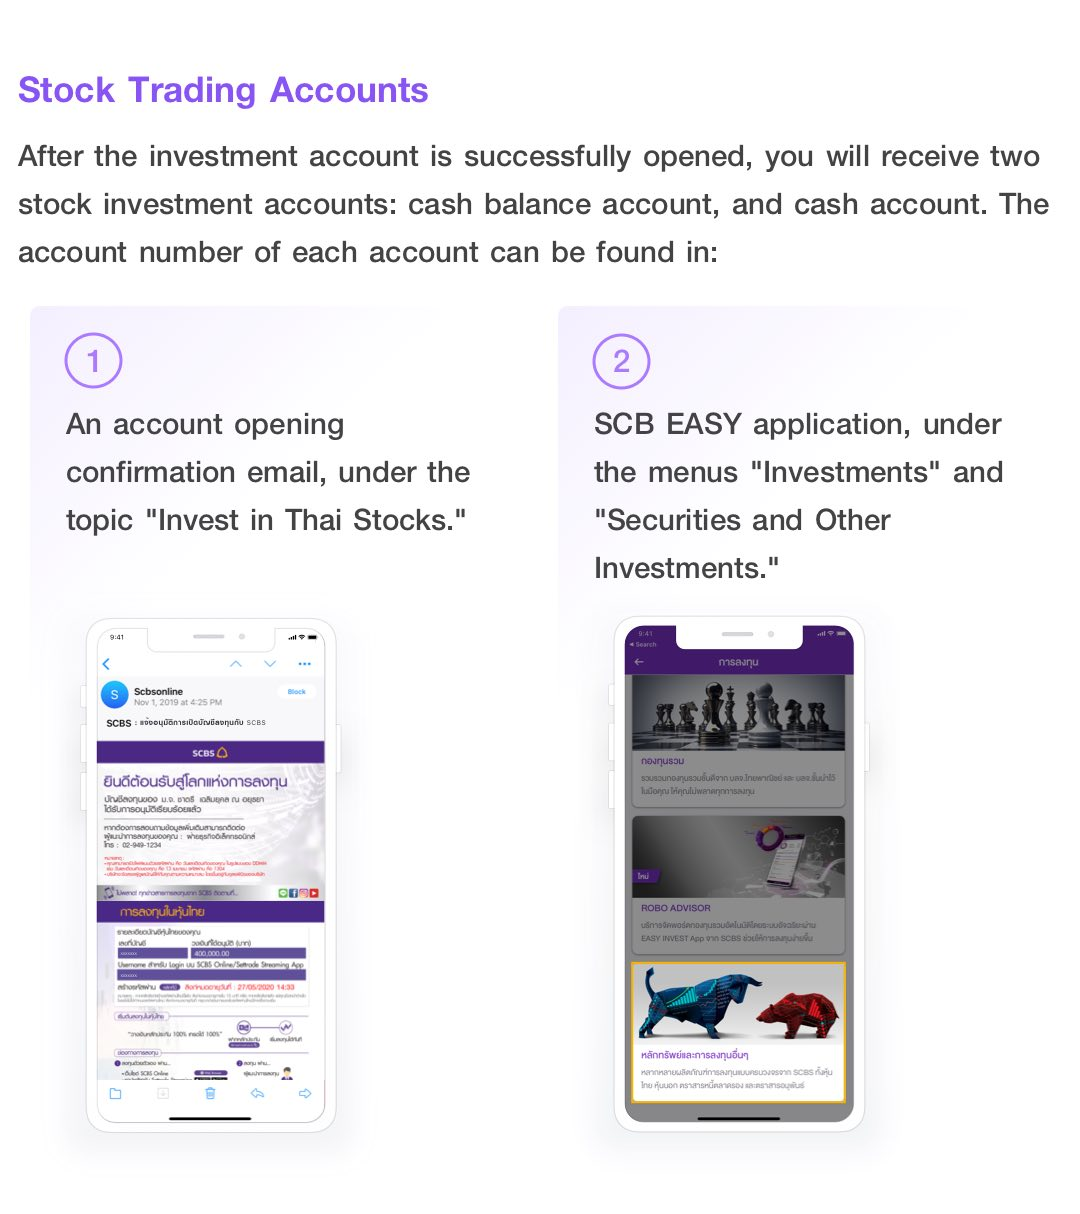 Stock Trading Accounts. You will receive two stock investment accounts: cash balance account, and cash account. The account number of each account can be found in an account opening confirmation email, under the topic 'Invest in Thai Stocks.' and SCB EASY application, under the menus 'Investments' and 'Securities and Other Investments.'